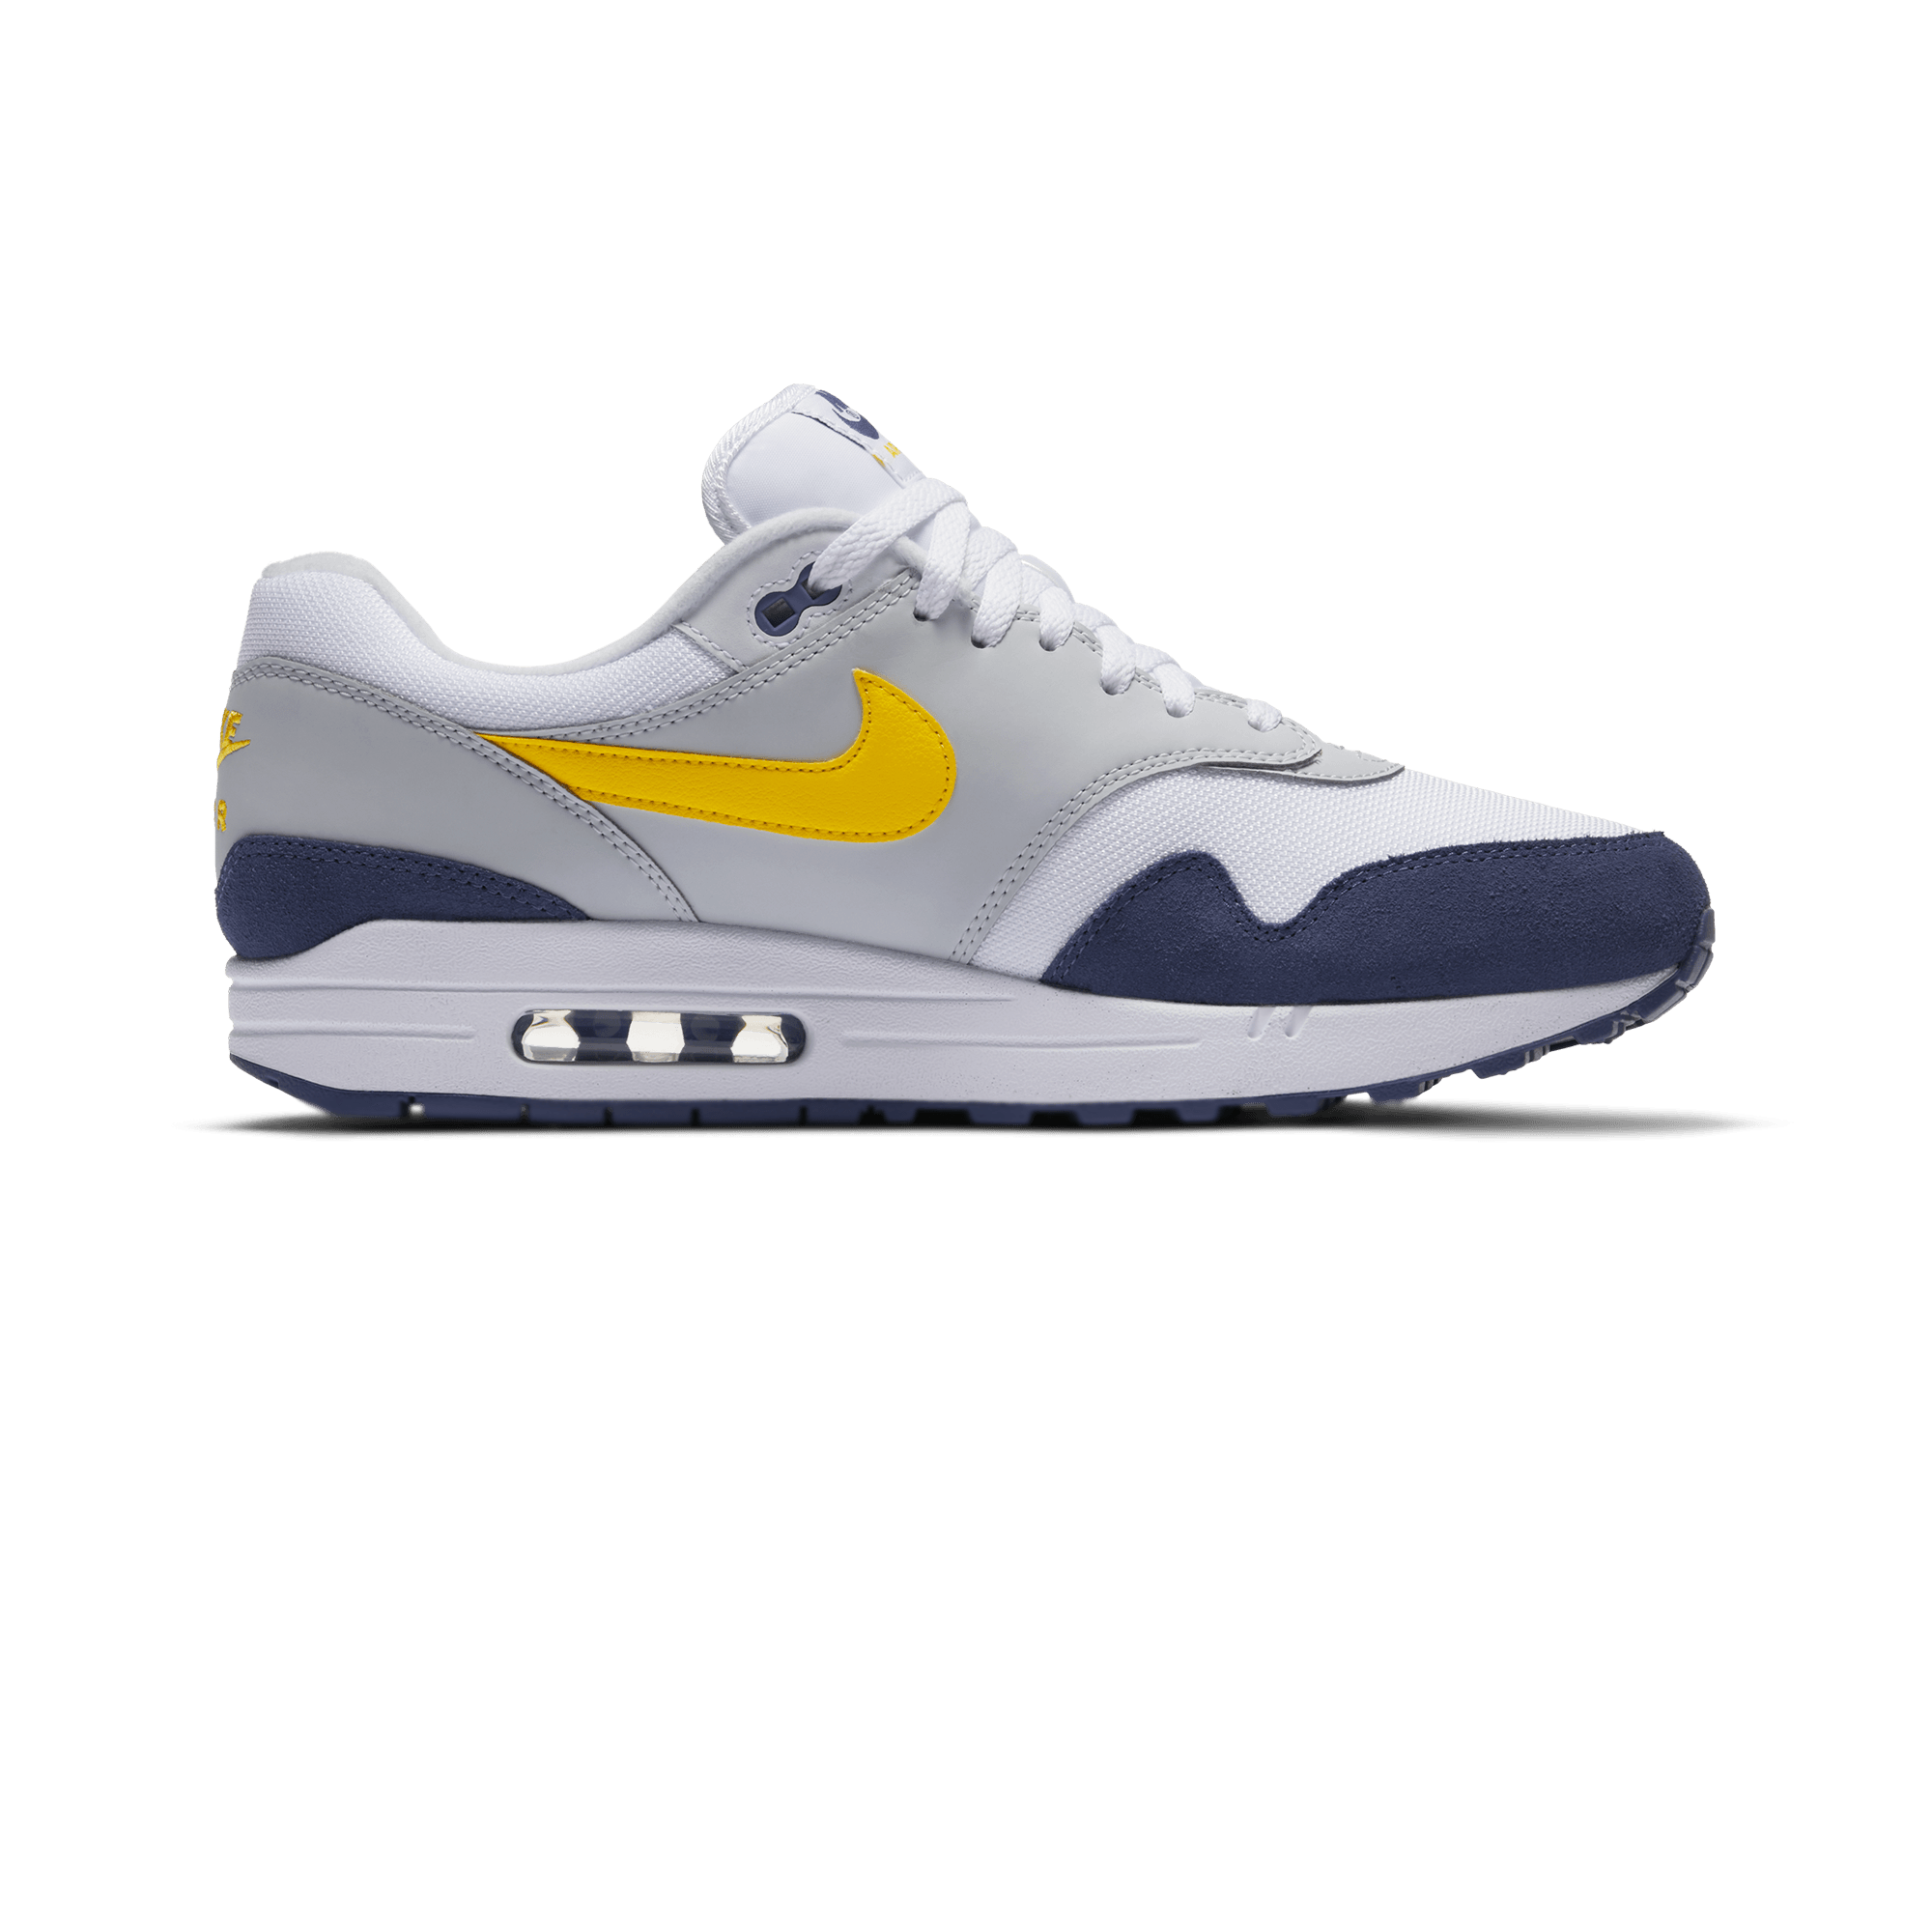 Air Max 1 white / tour yellow / blue recall